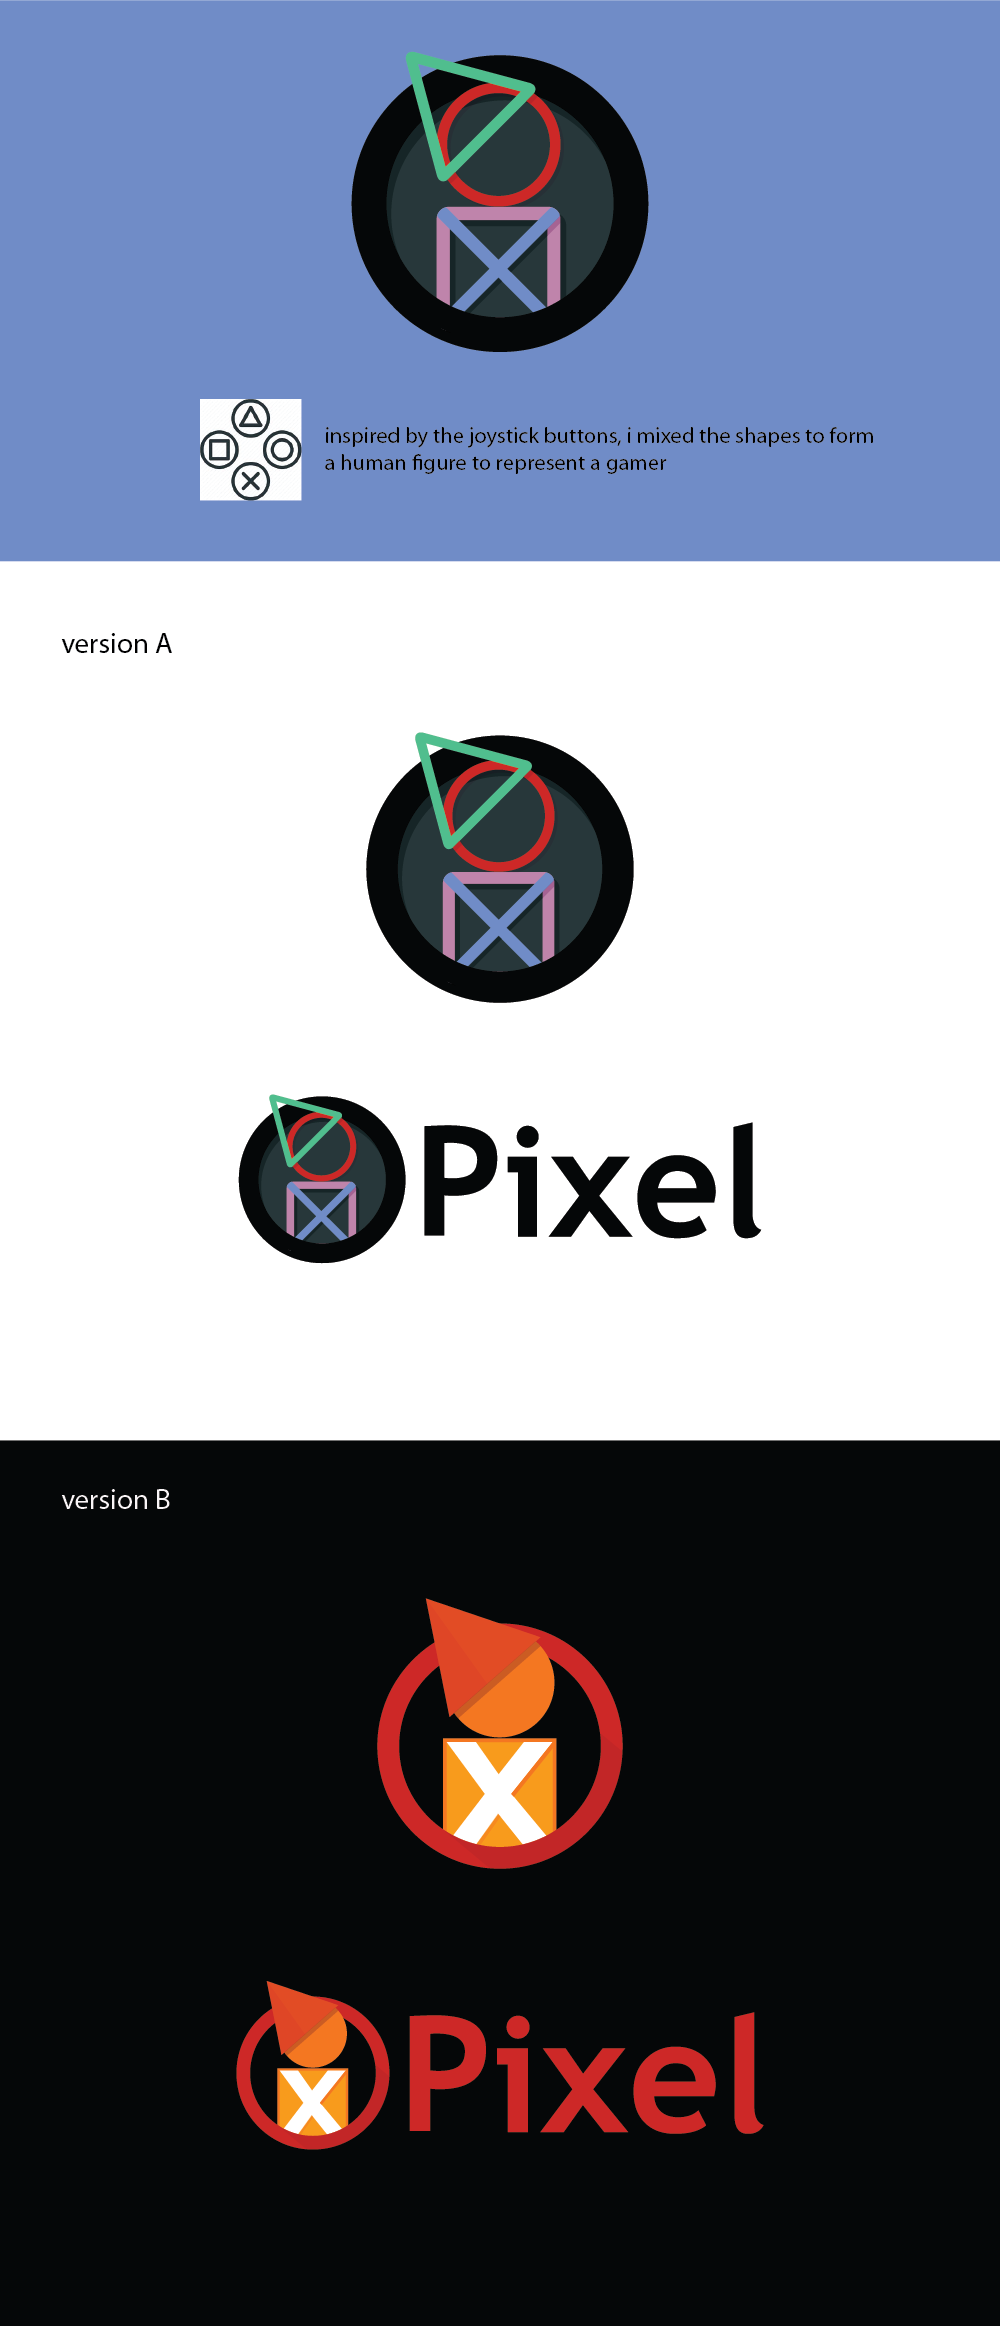 Logo design proposal · Issue #166 · faiface/pixel · GitHub